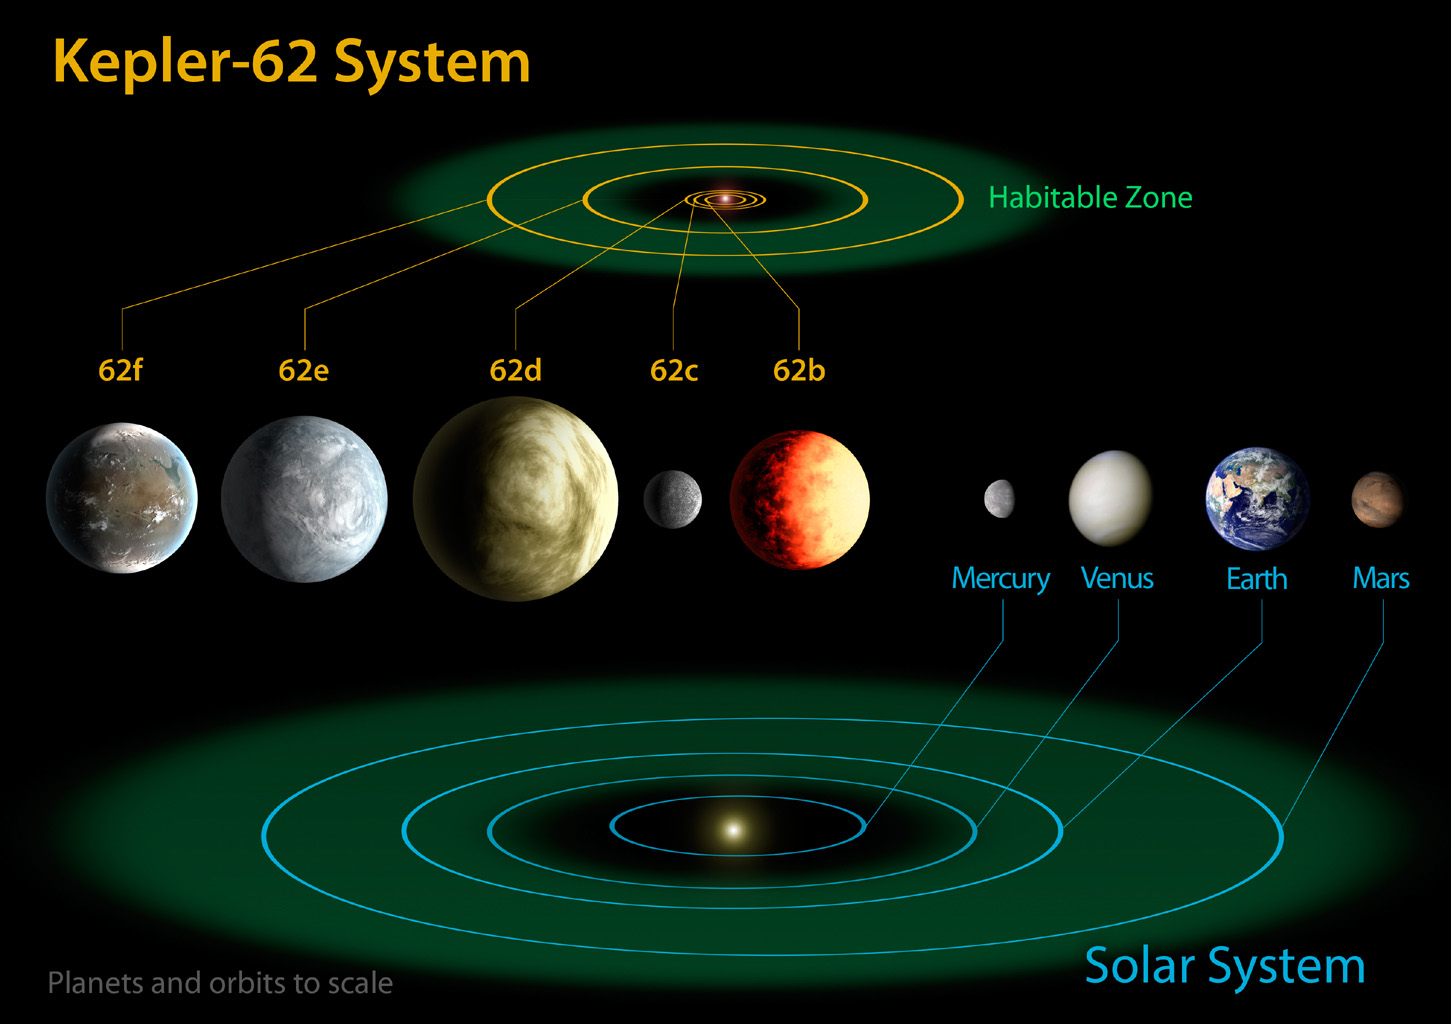 space images kepler 62 and the solar system Solar System Chart this diagram compares the planets of the inner solar system to kepler 62, a